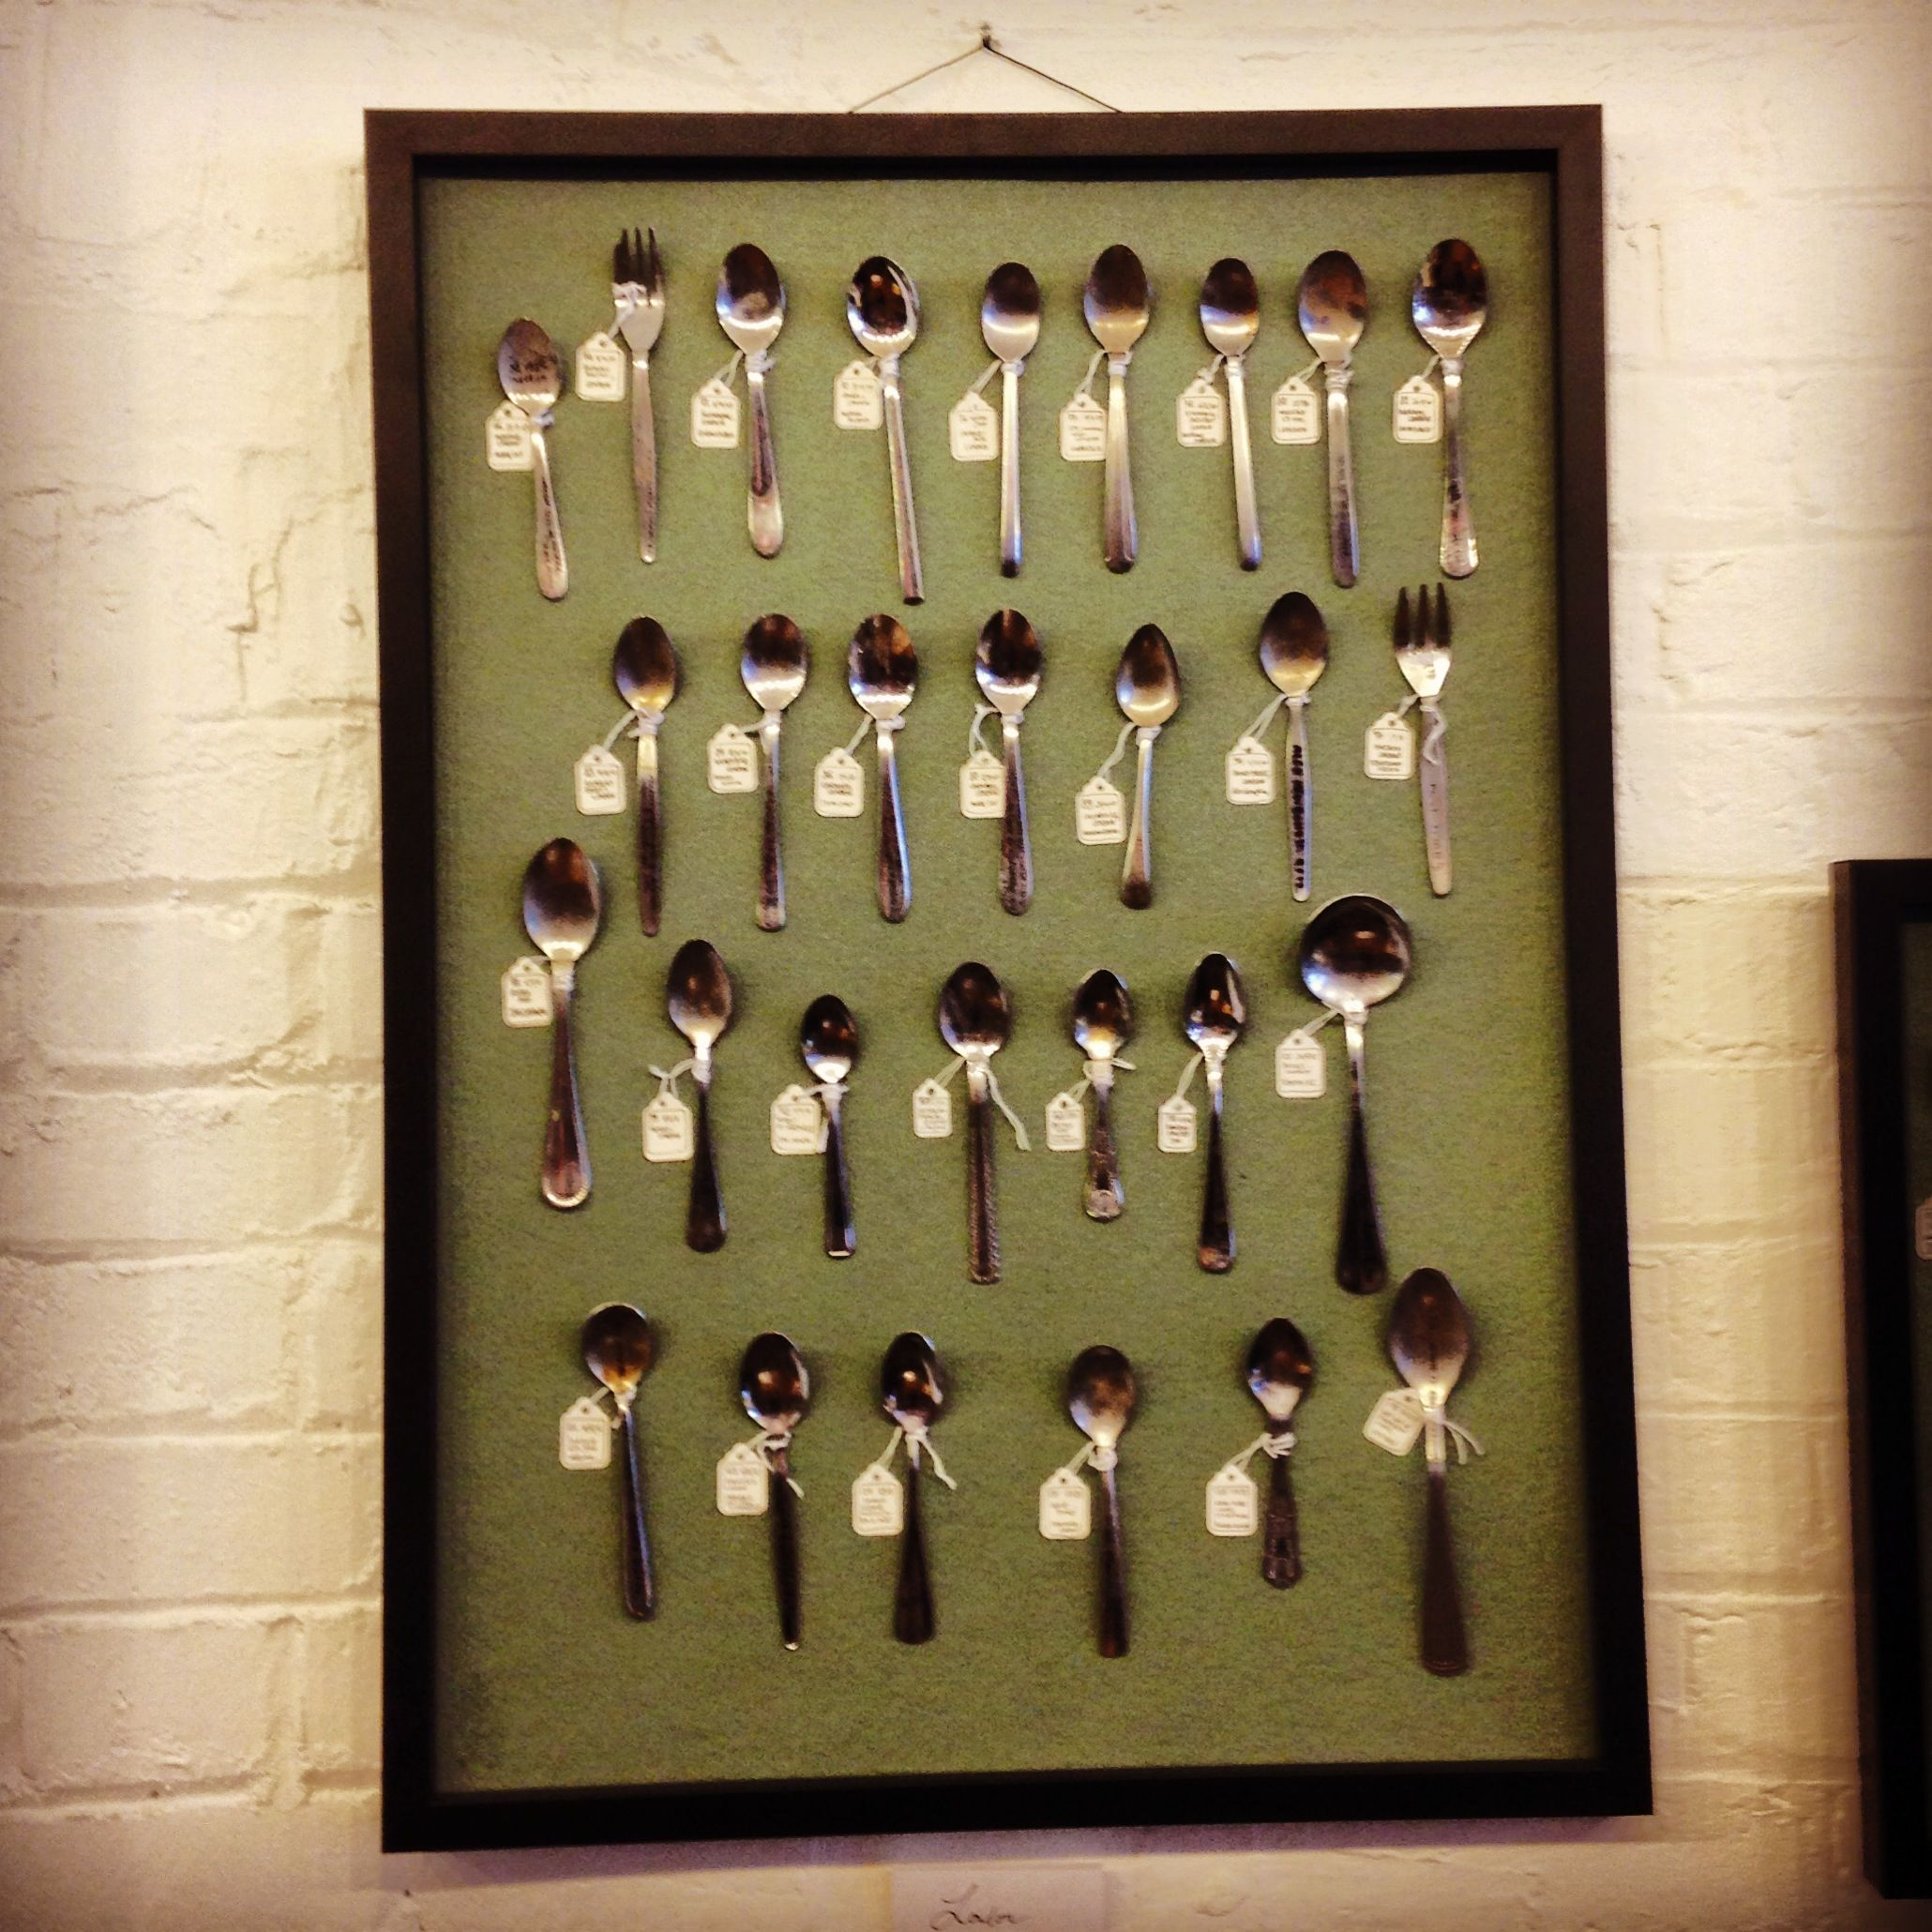 Coffee spoons stolen from around the world! At the ...